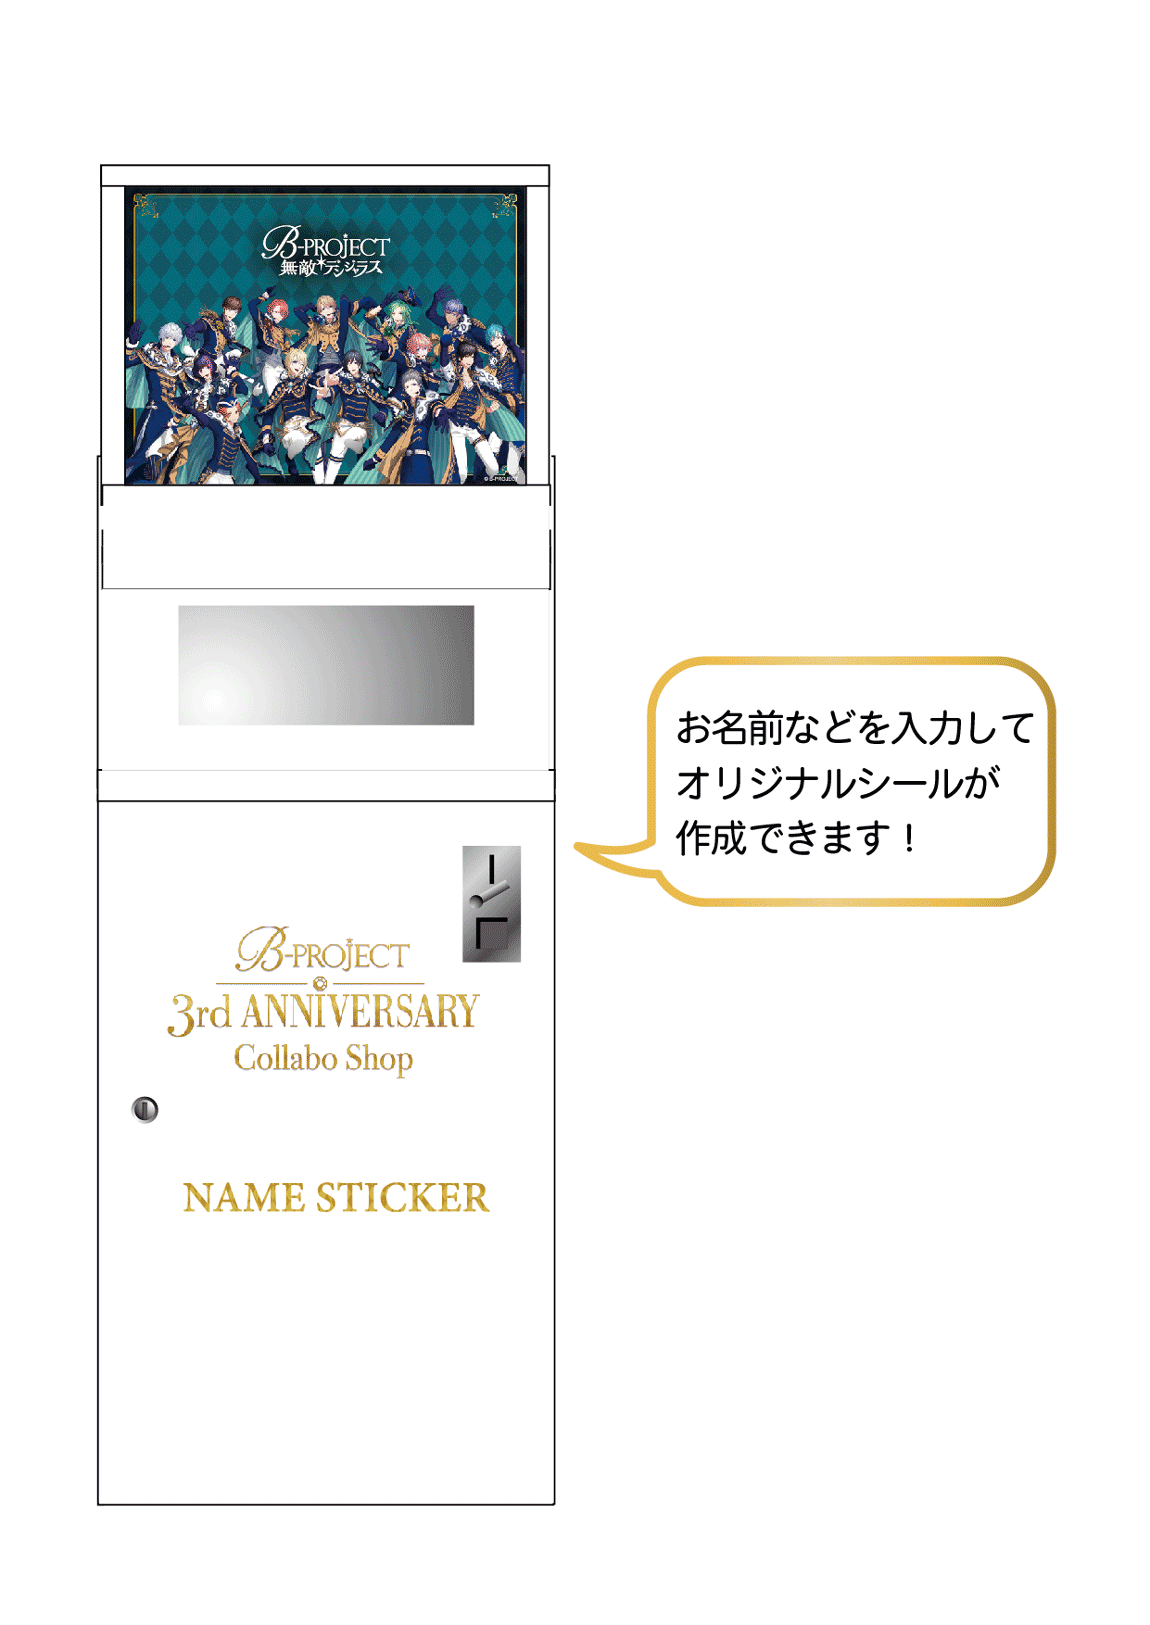 B-PROJECT 3rd Anniversary Collaabo Shop ネームステッカーマシン